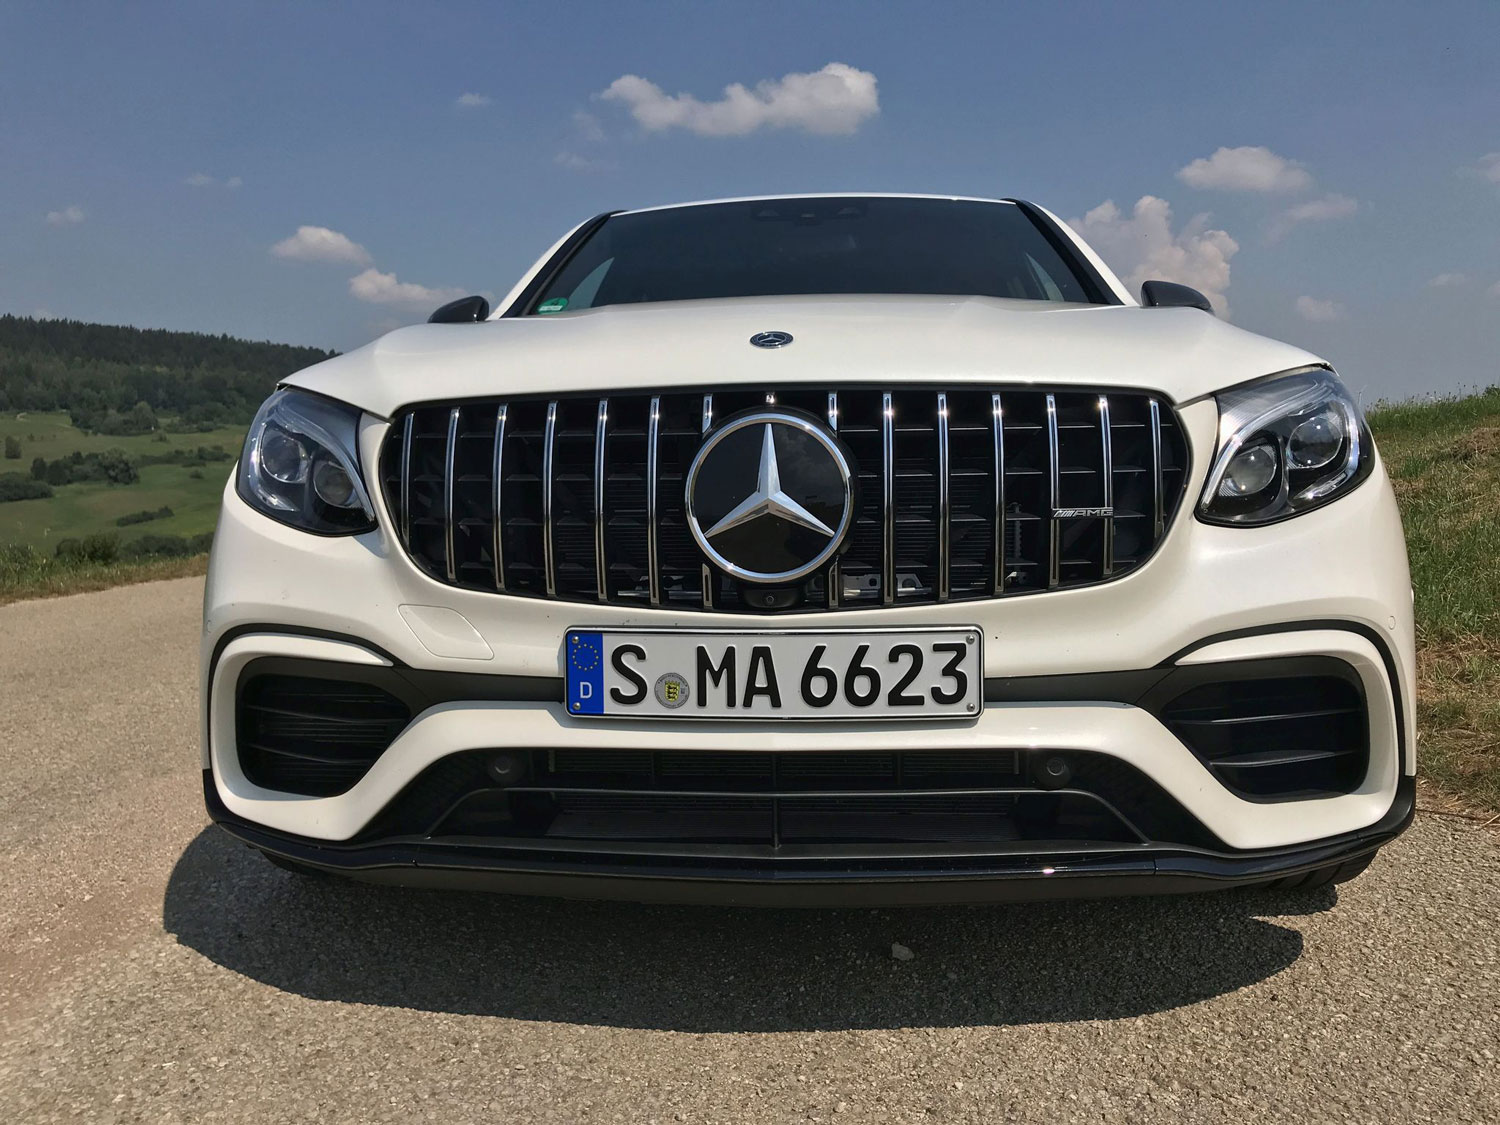 Новый Mercedes-AMG GLC 63 S 4MATIC решетка радиатора